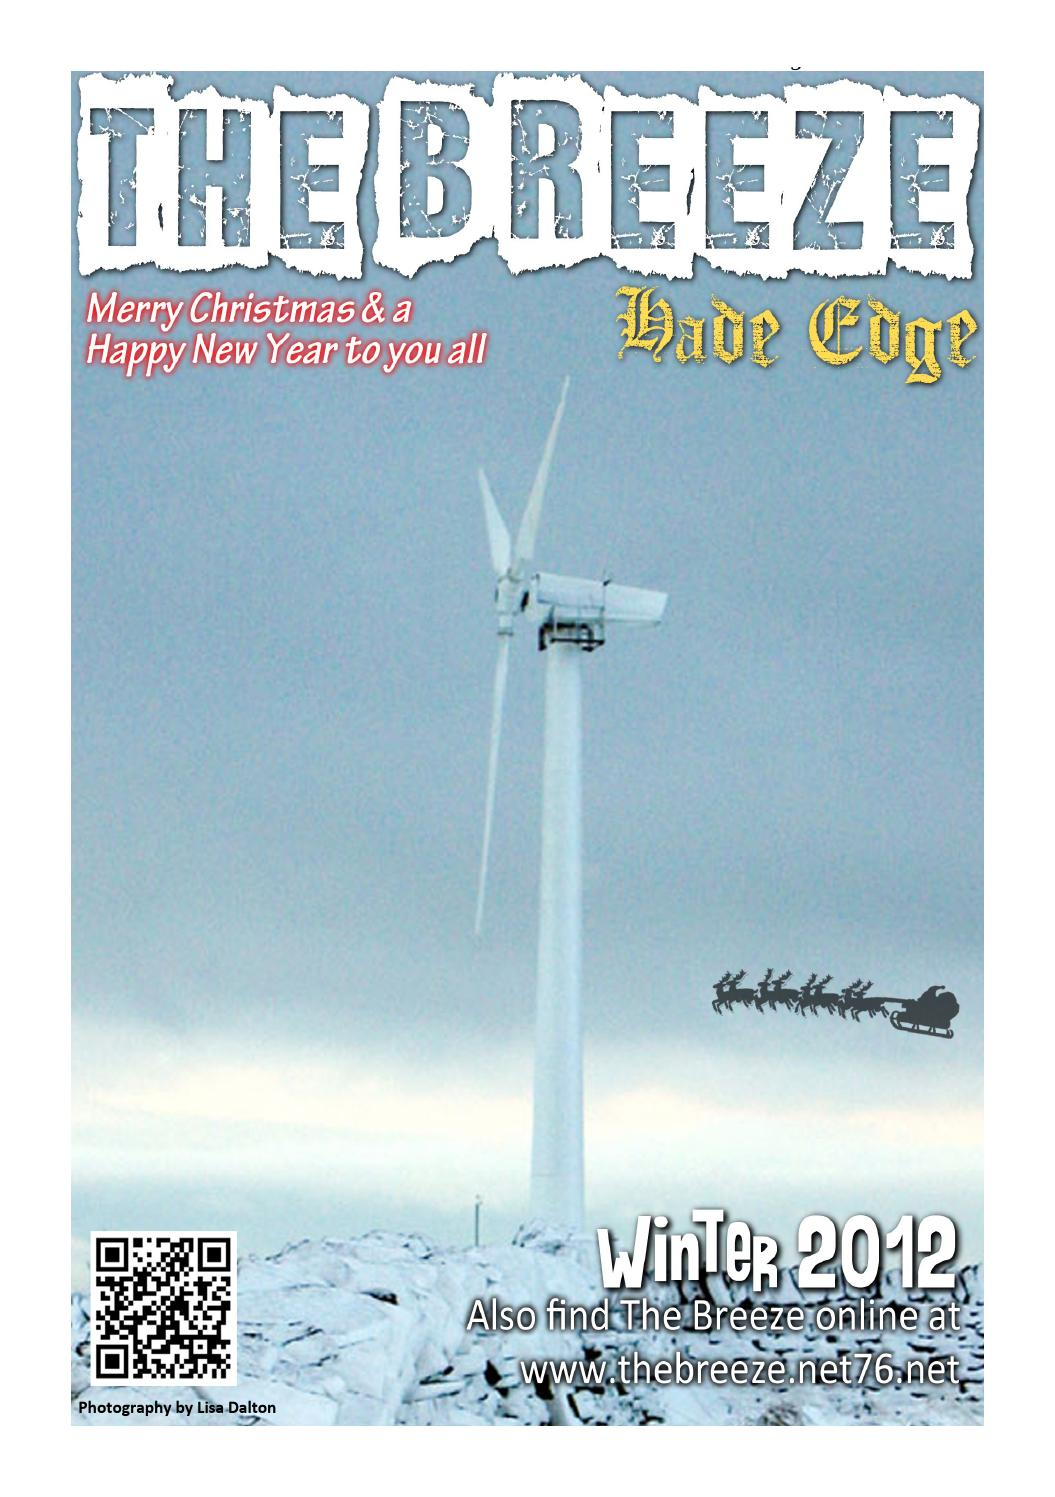 The Hade Edge Breeze Newsletter - 2012 - Winter Edition by Hade Edge ...